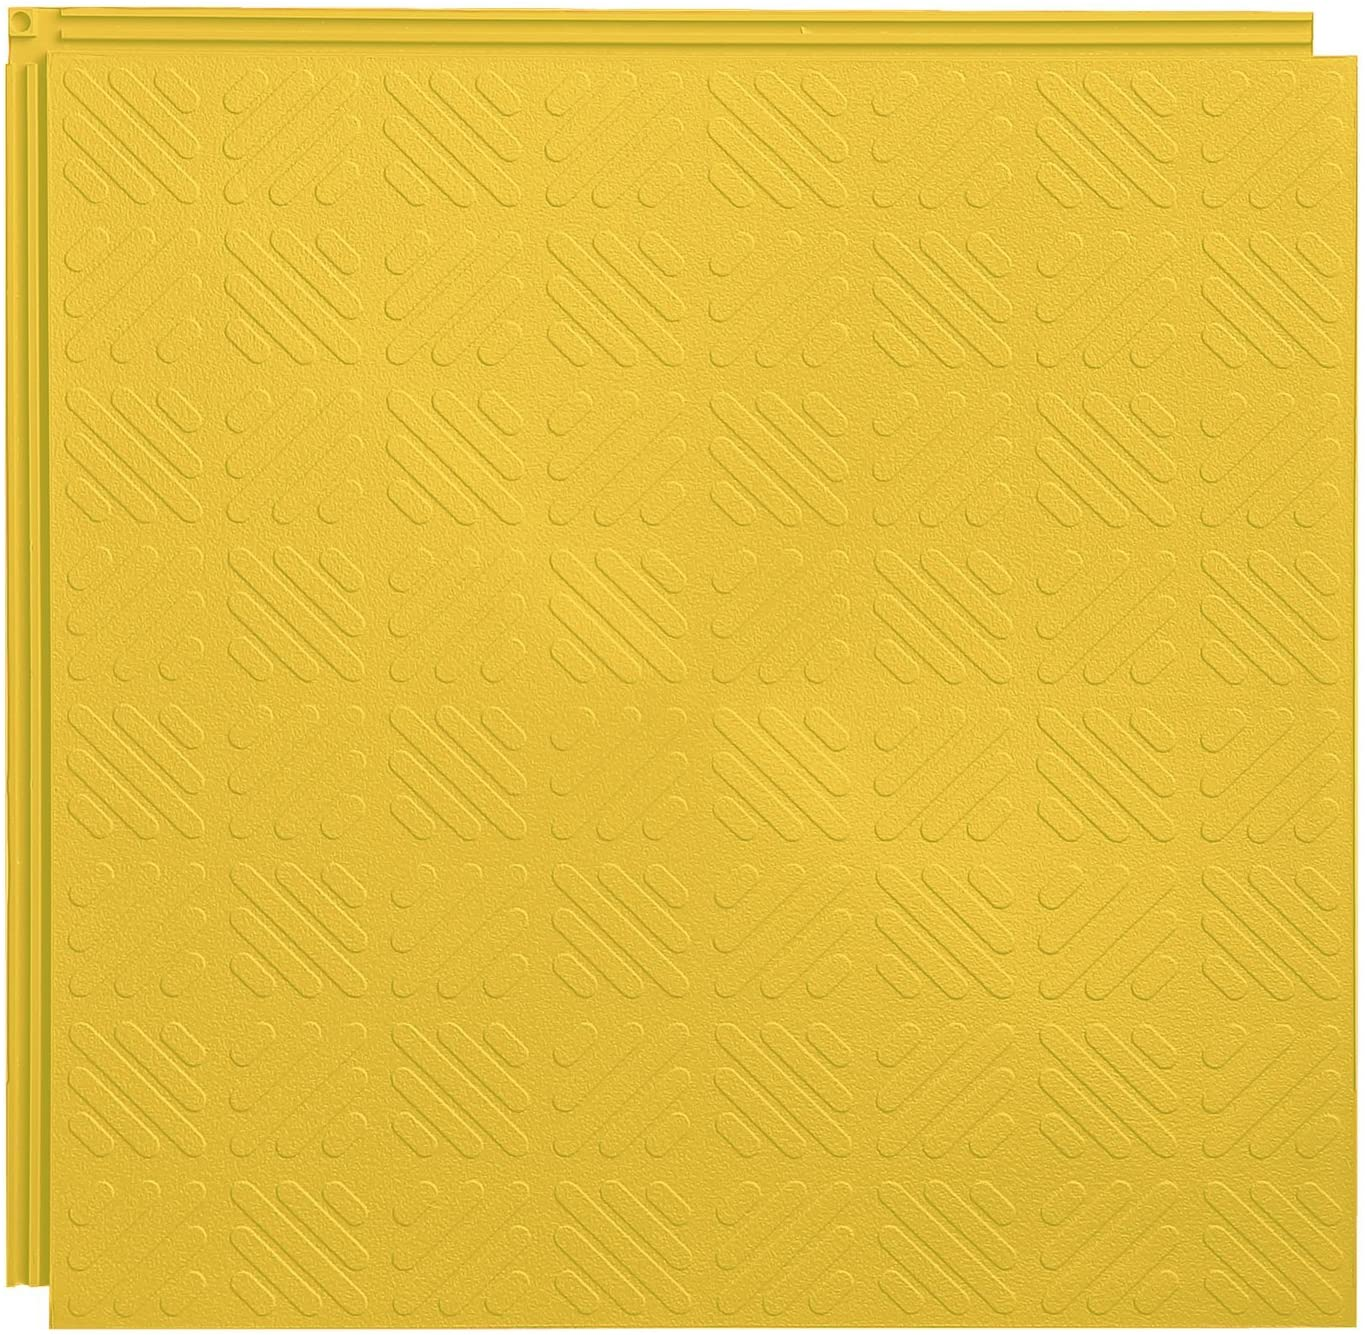 Resilia Flexible Interlocking Snap Floor Tiles – Protective Flooring for Your Garage, Home, Office or Gym, Yellow Color, Grid Texture, 12-inch, 0.25-inch, 10 Pack